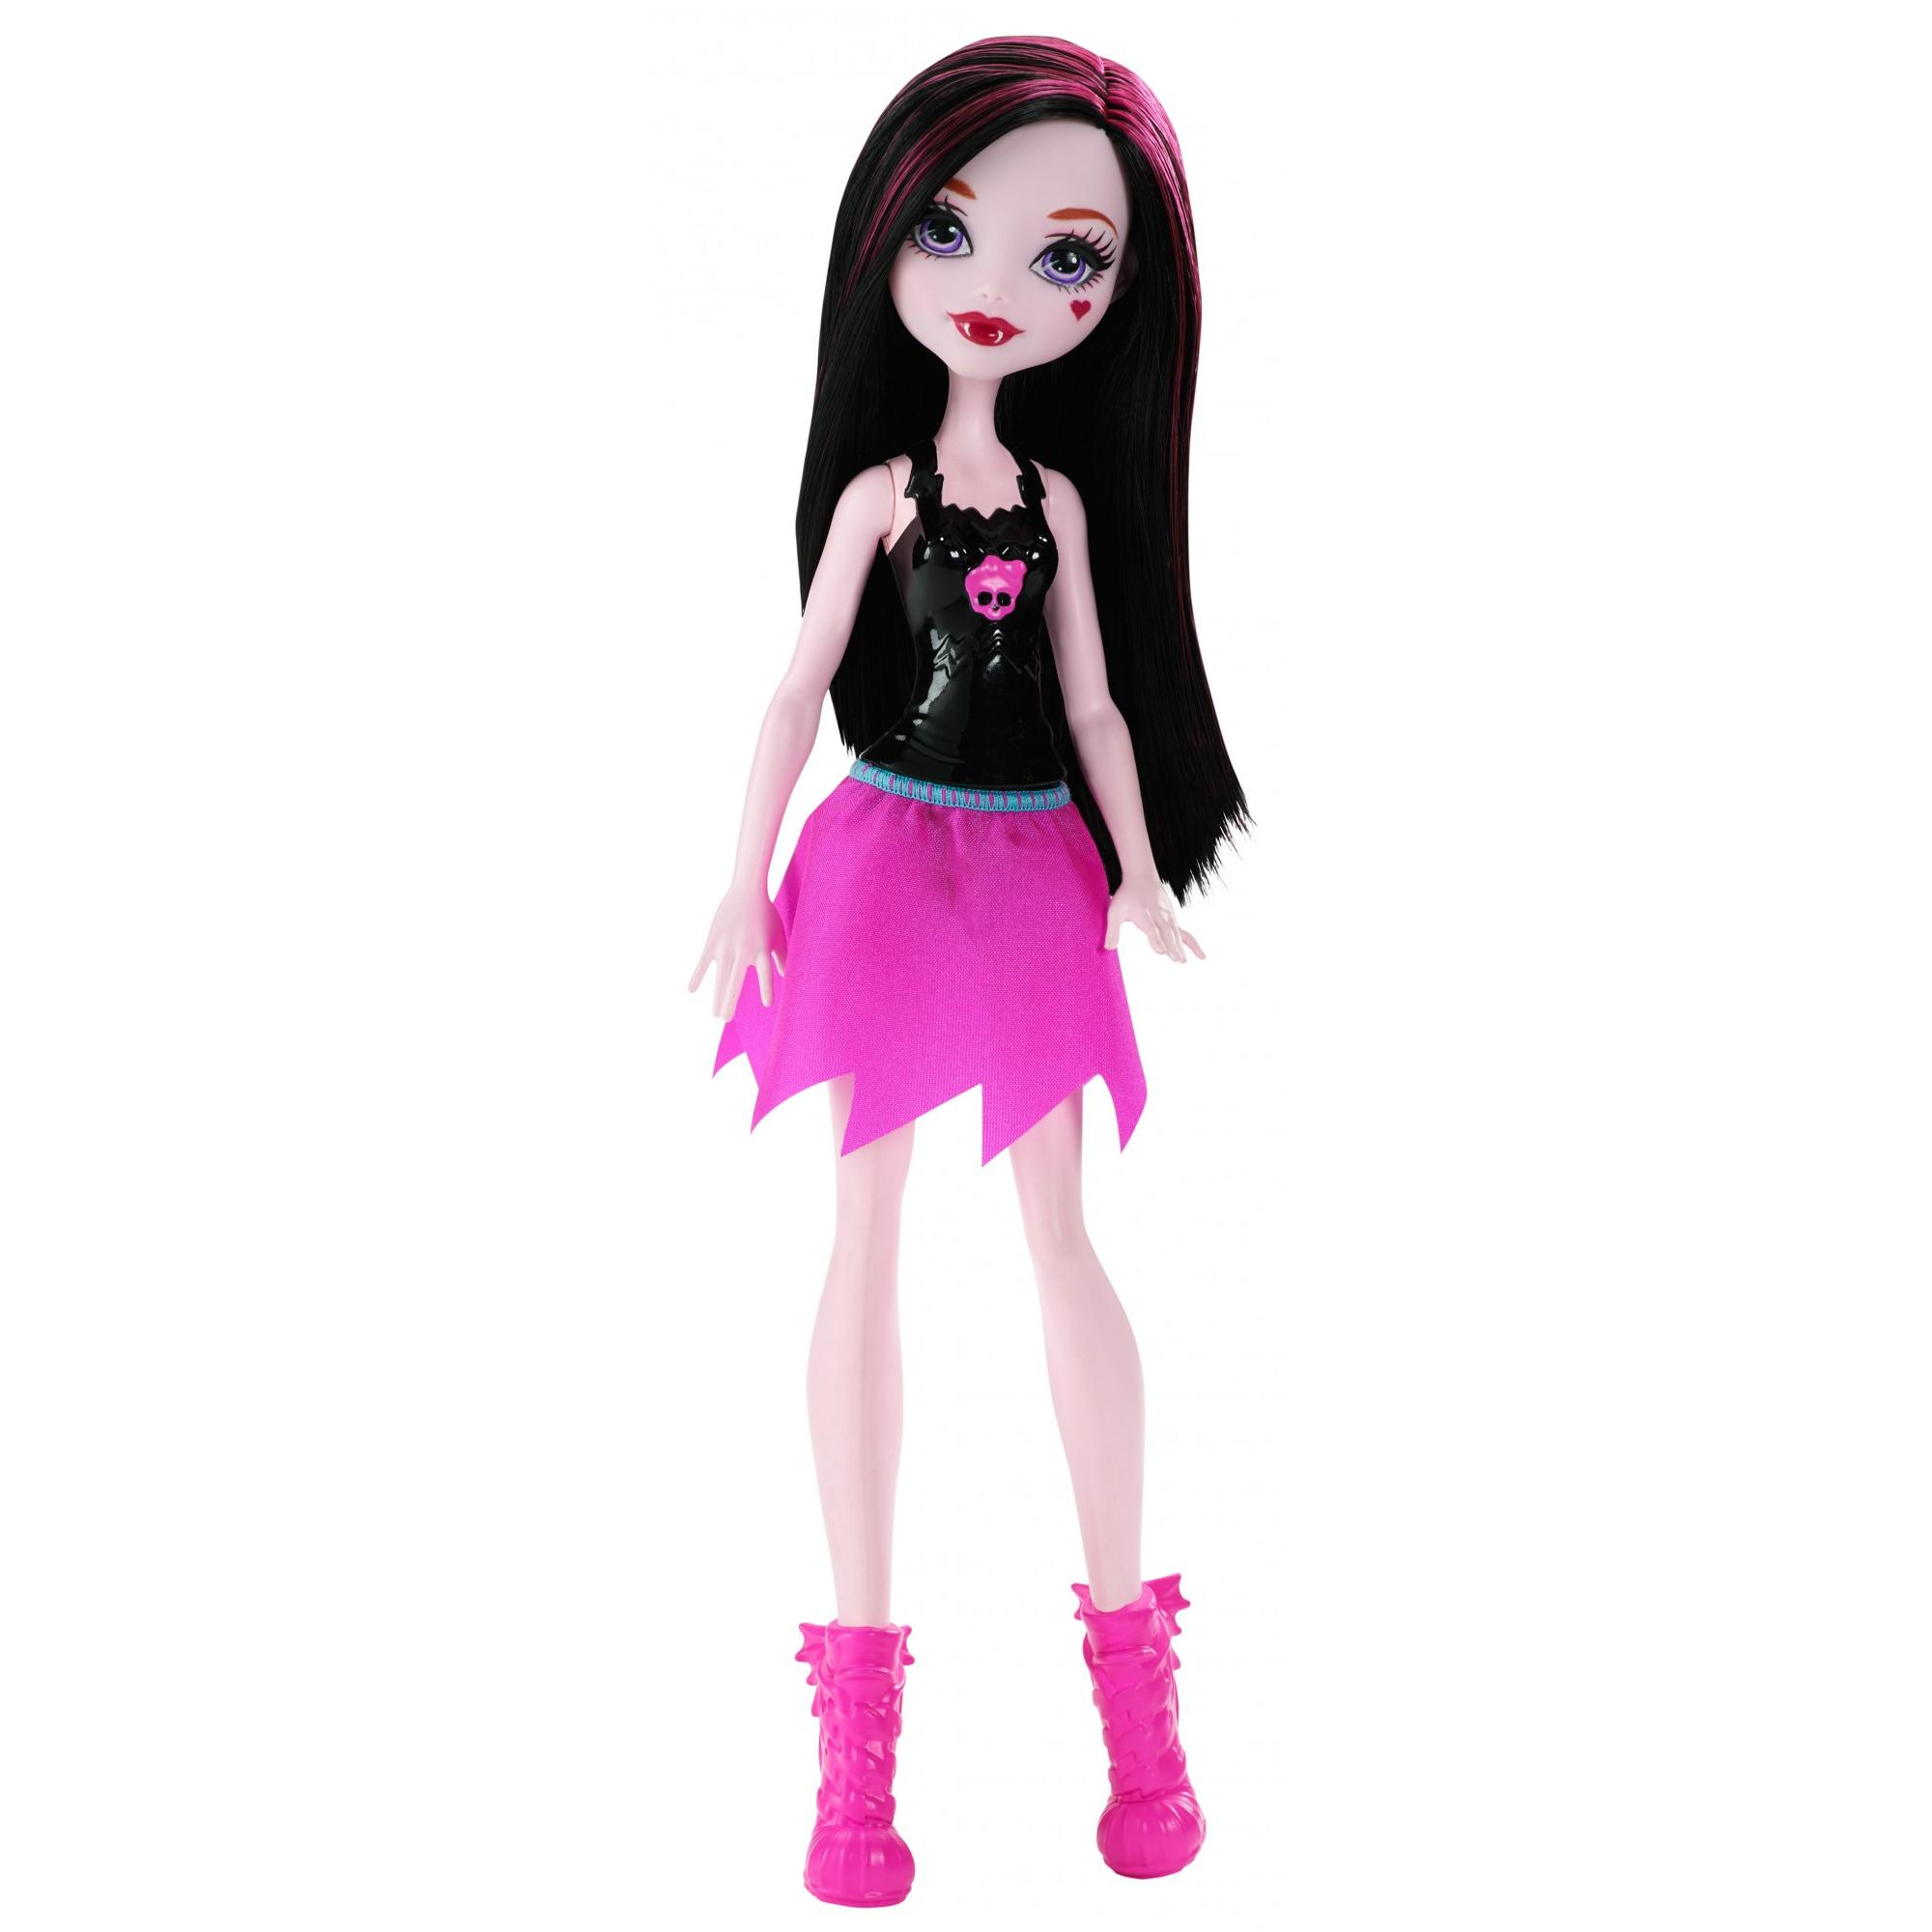 Monster High Draculaura Doll by MATTEL INC.